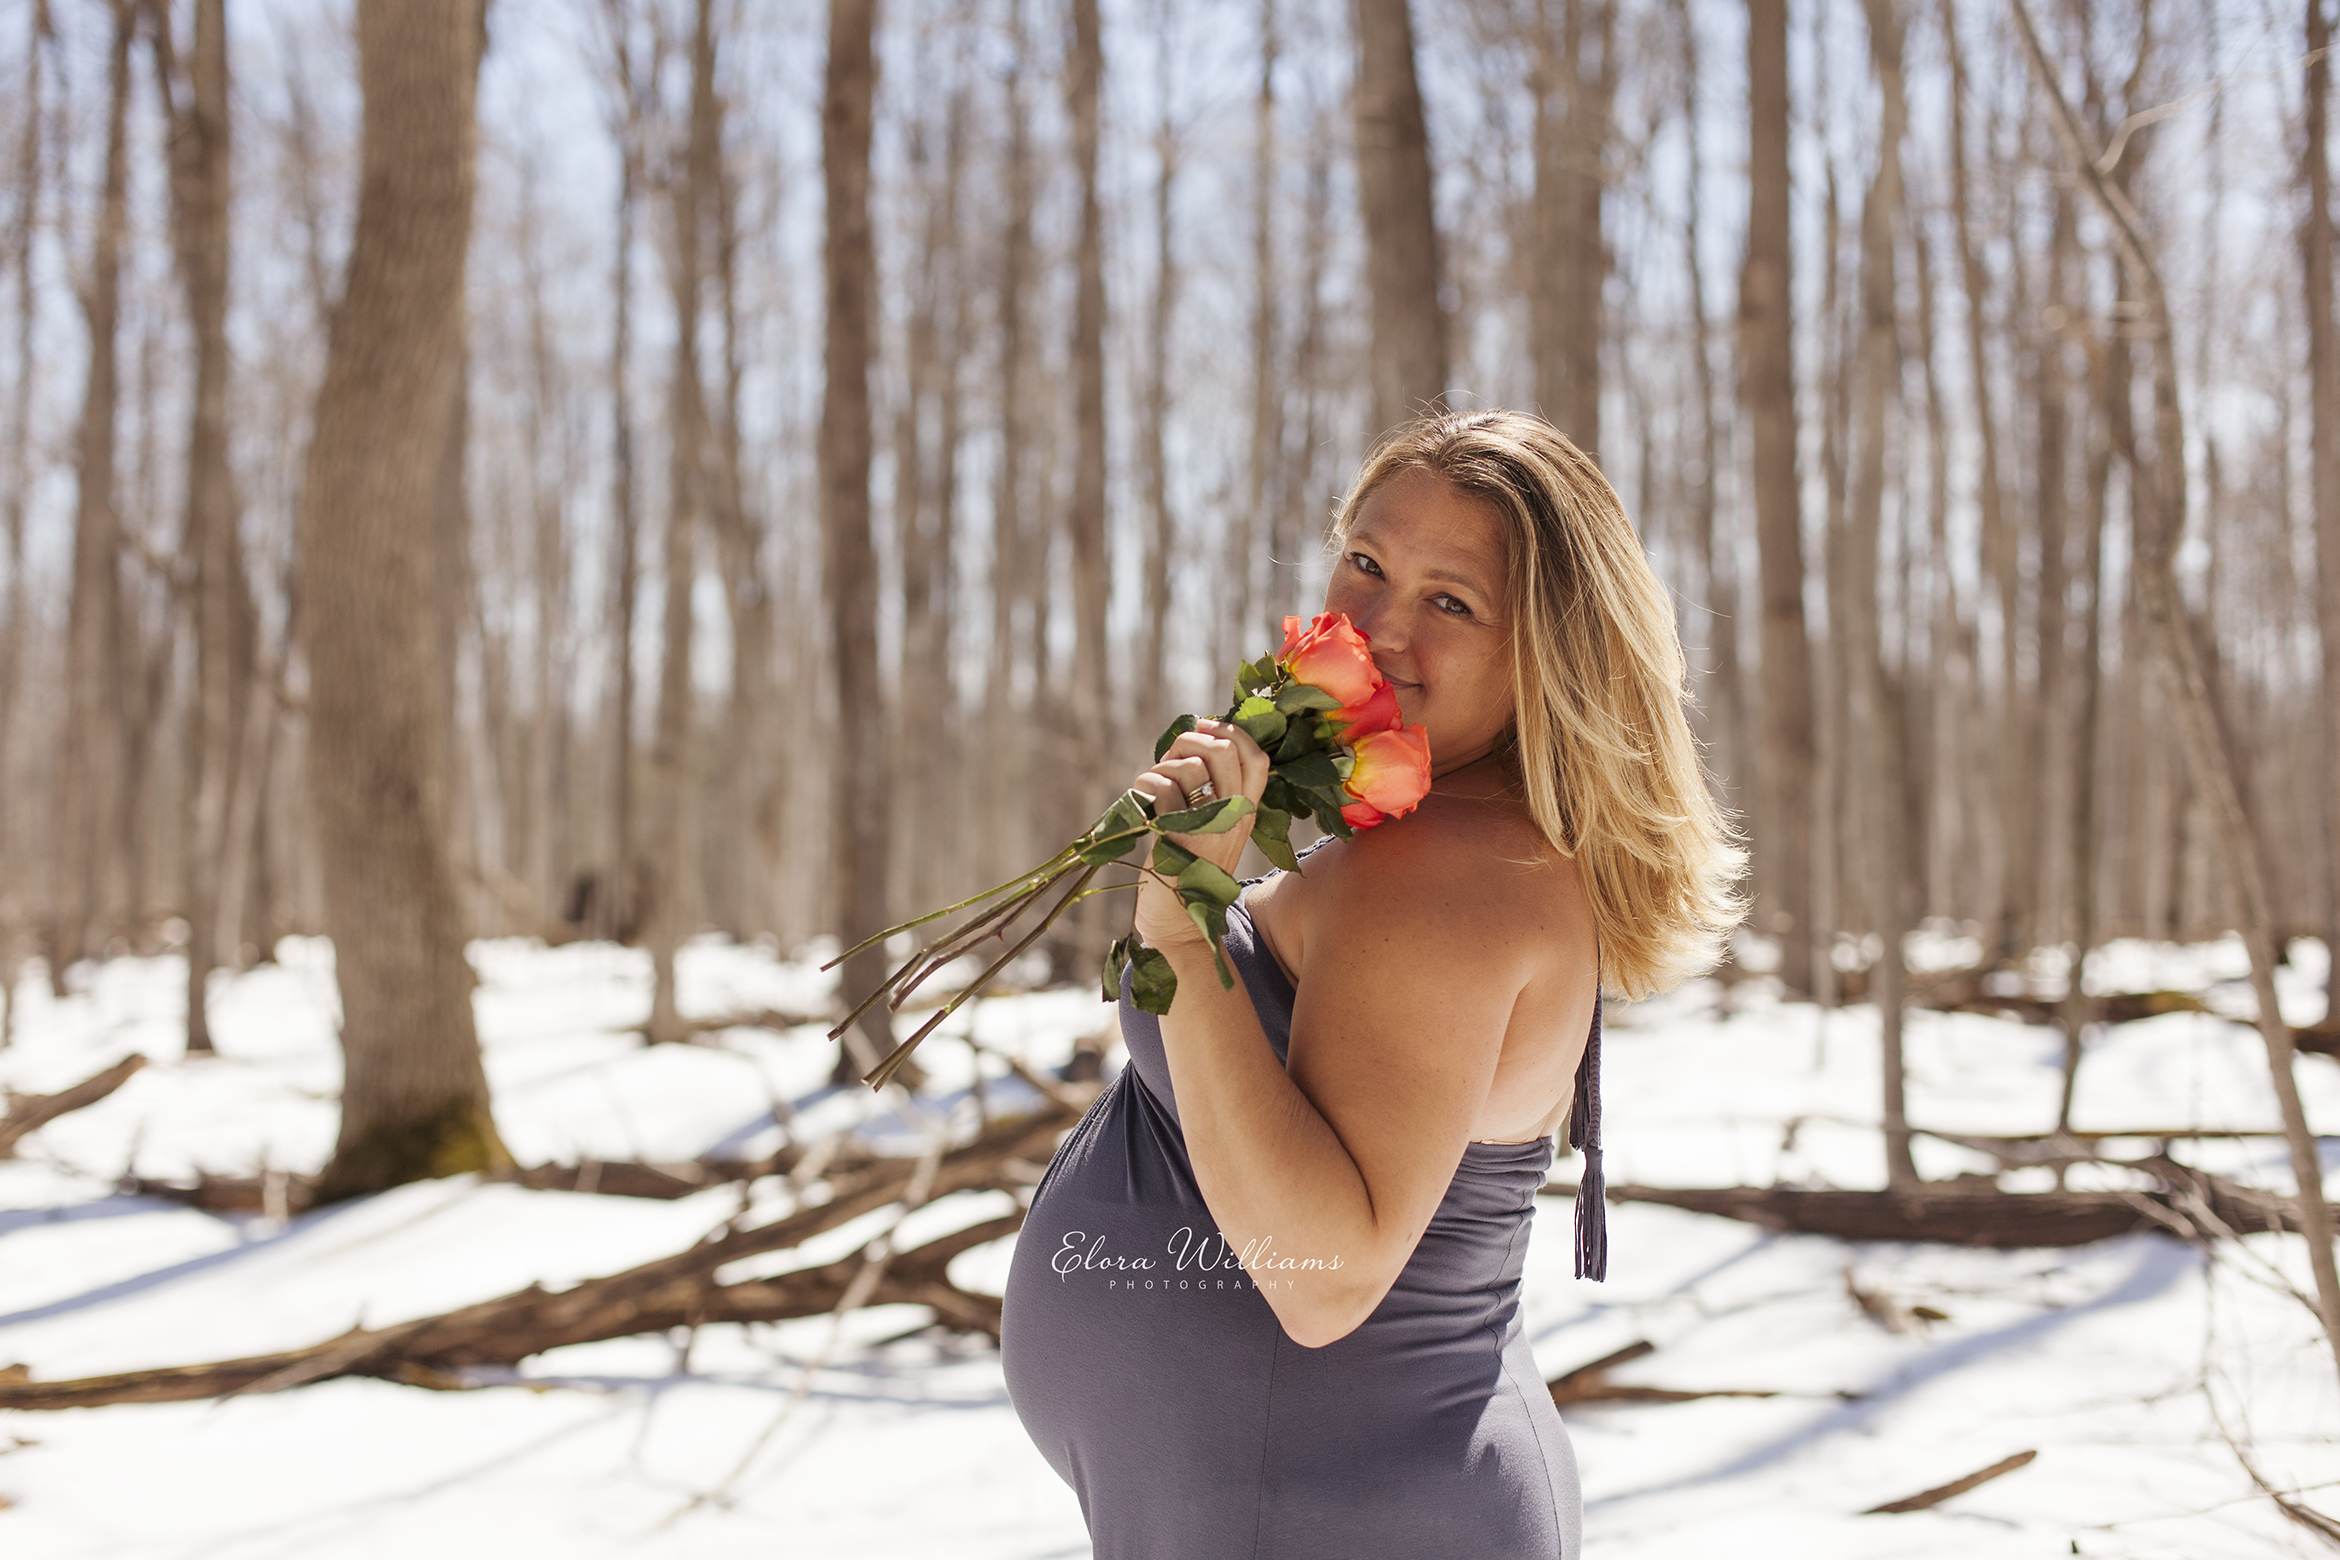 Maternity Photography  |  Elora Williams Photography